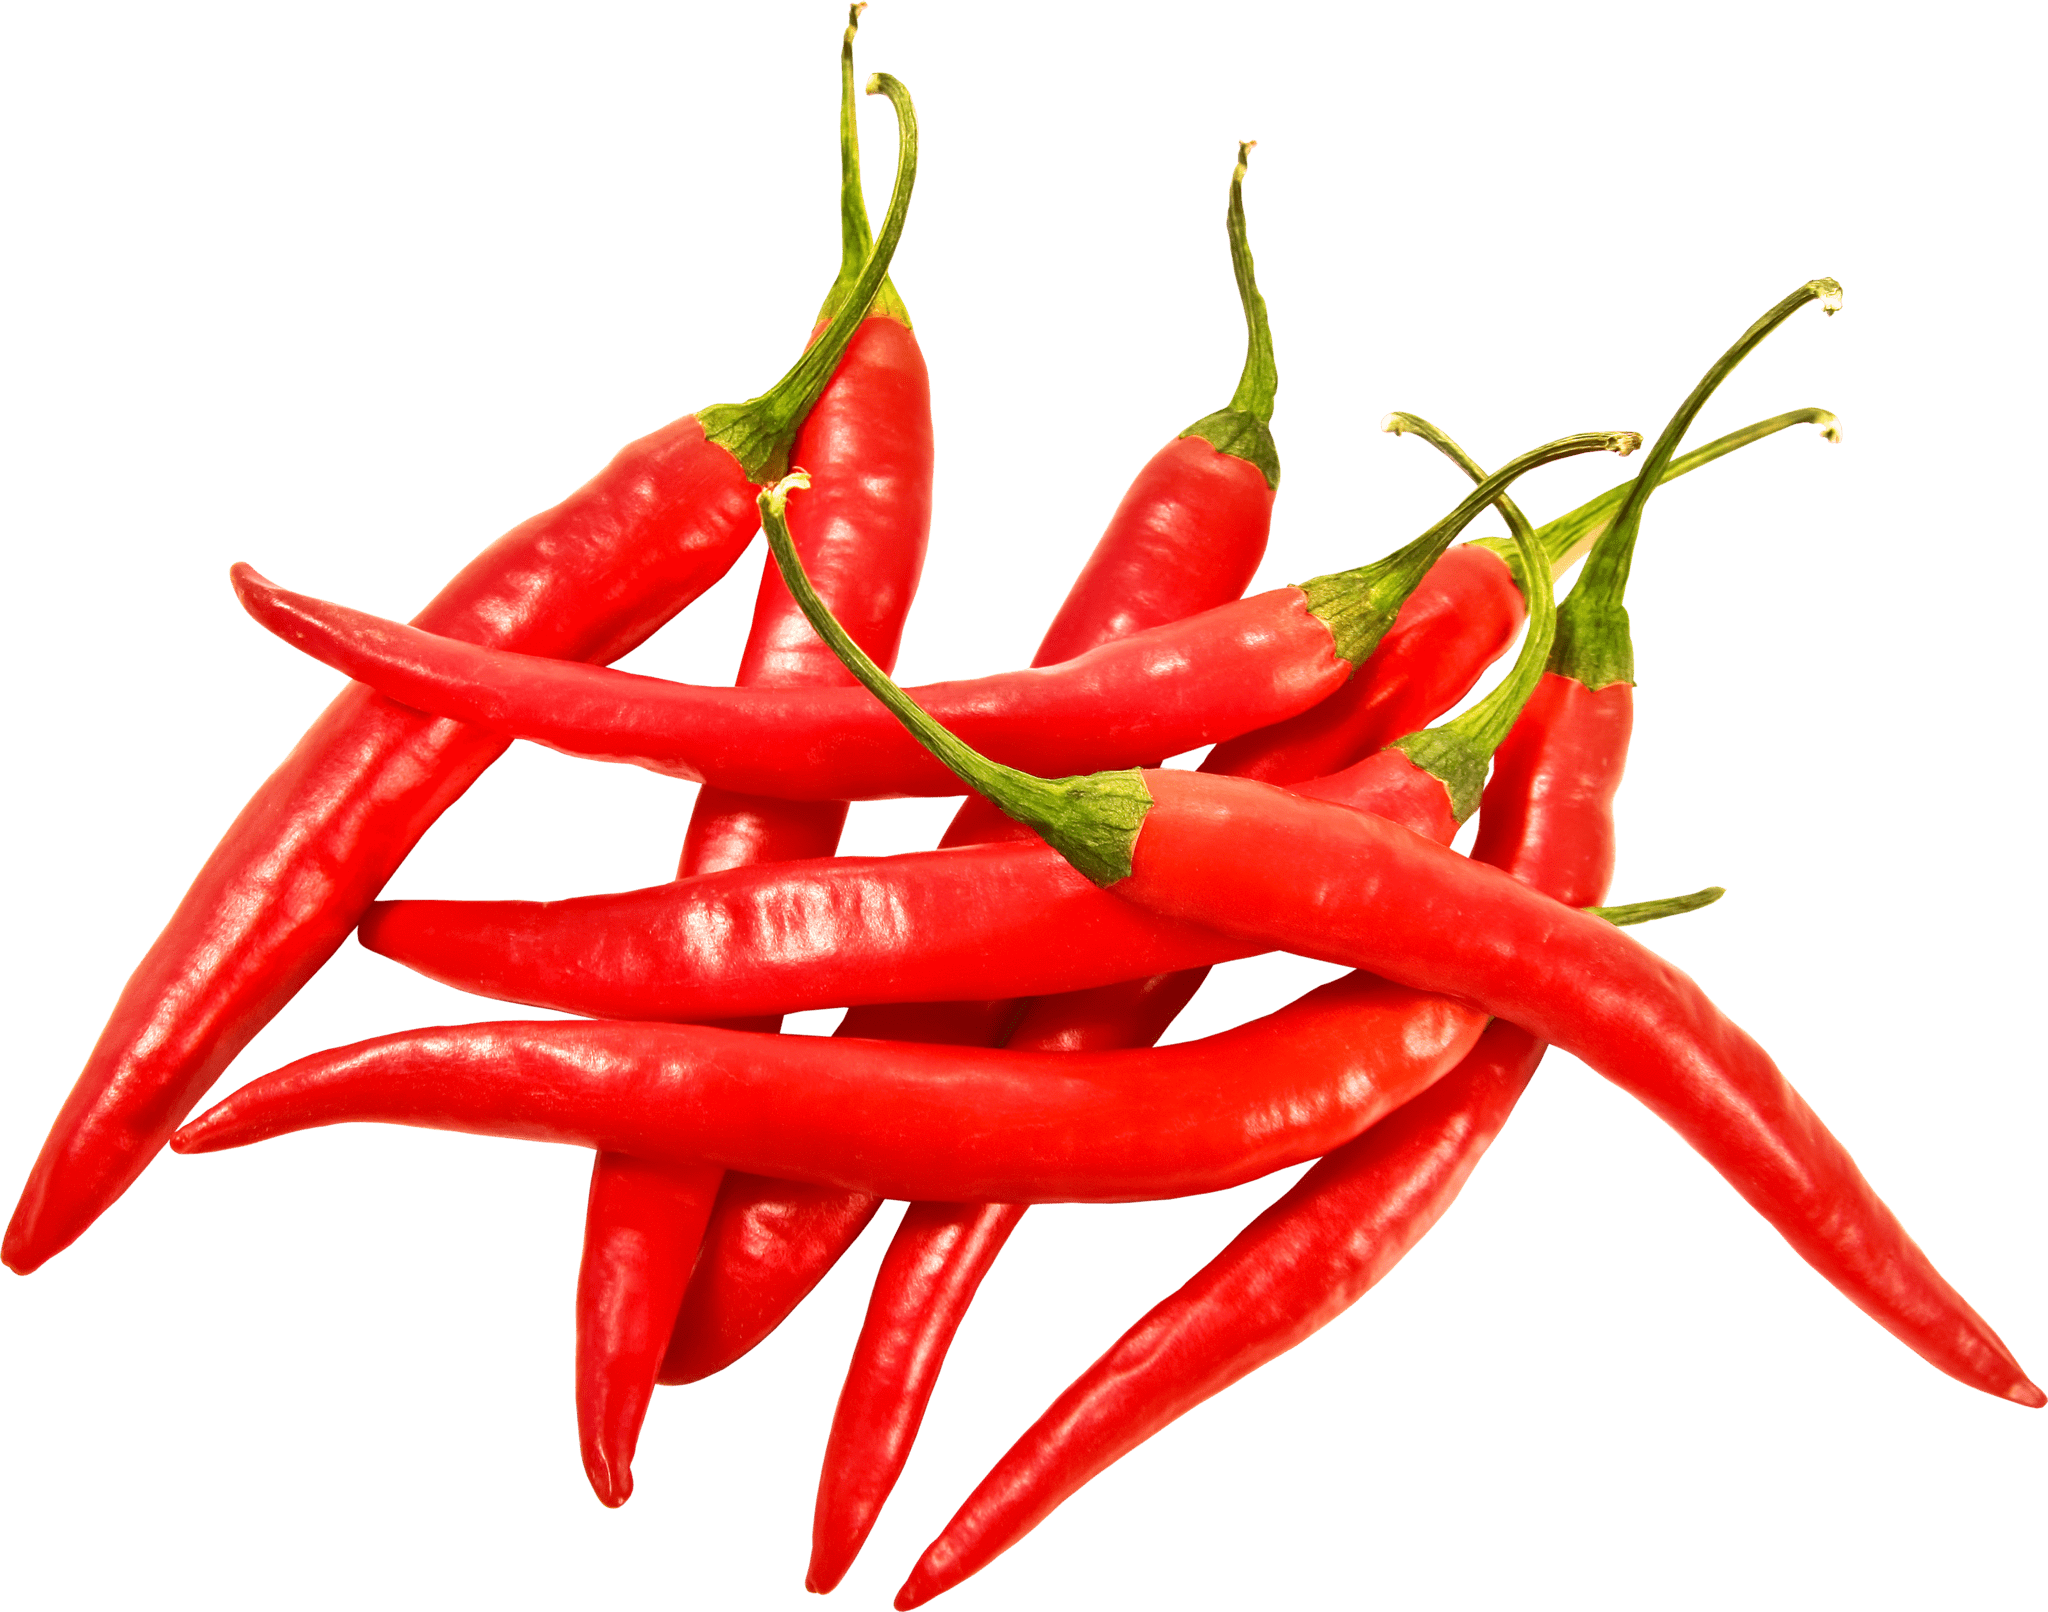 Hot clipart chilly. Free photo red chilli